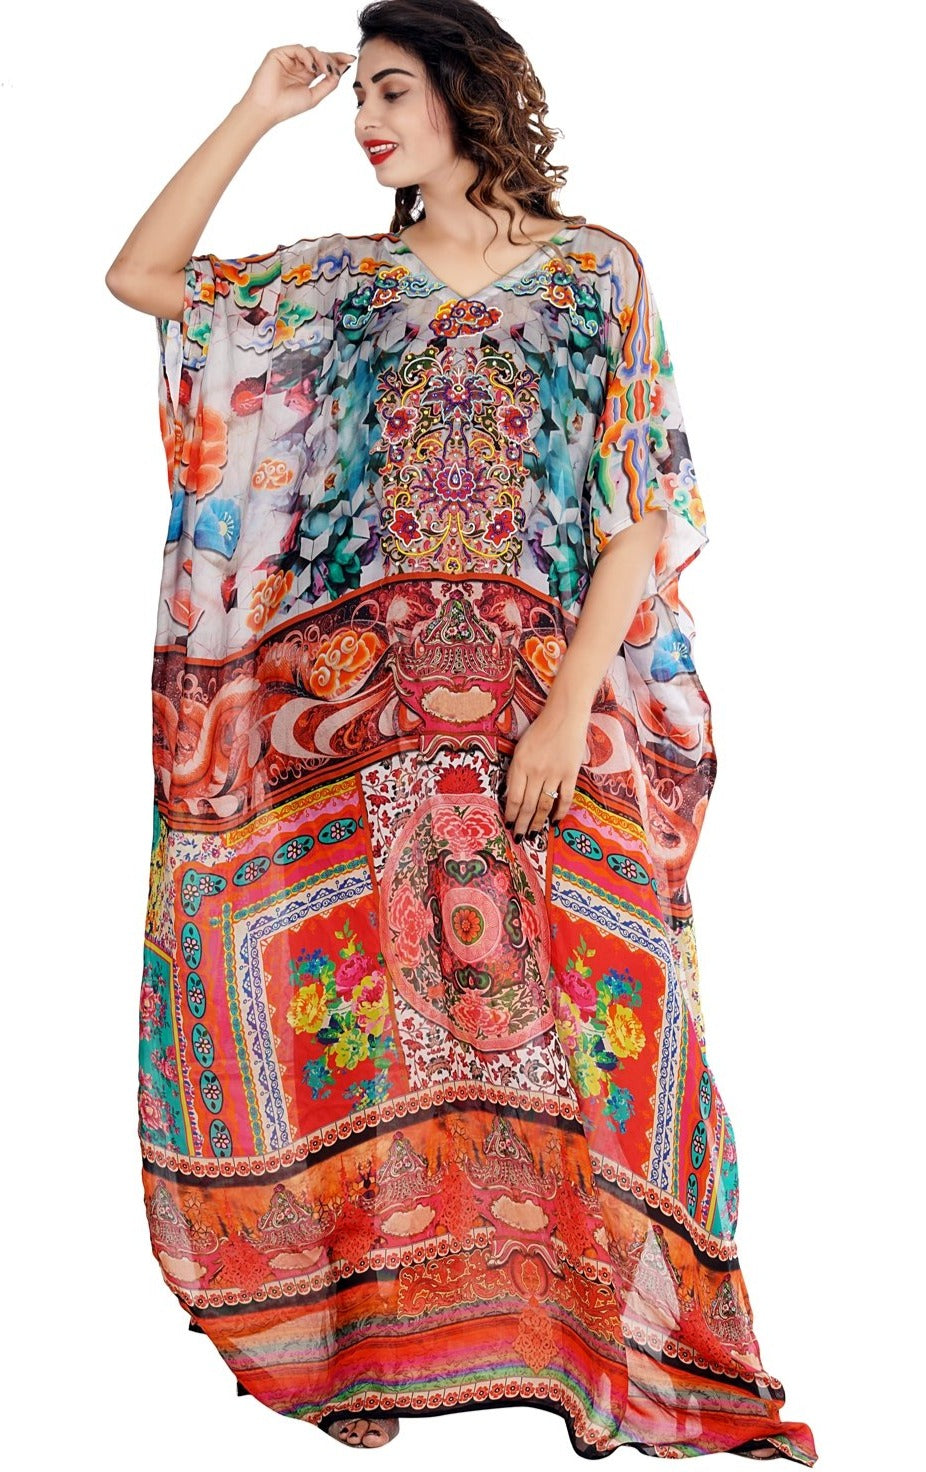 Appealing Tapestry Print Maxi long Kaftan with exquisite embellishments of beads - Silk kaftan